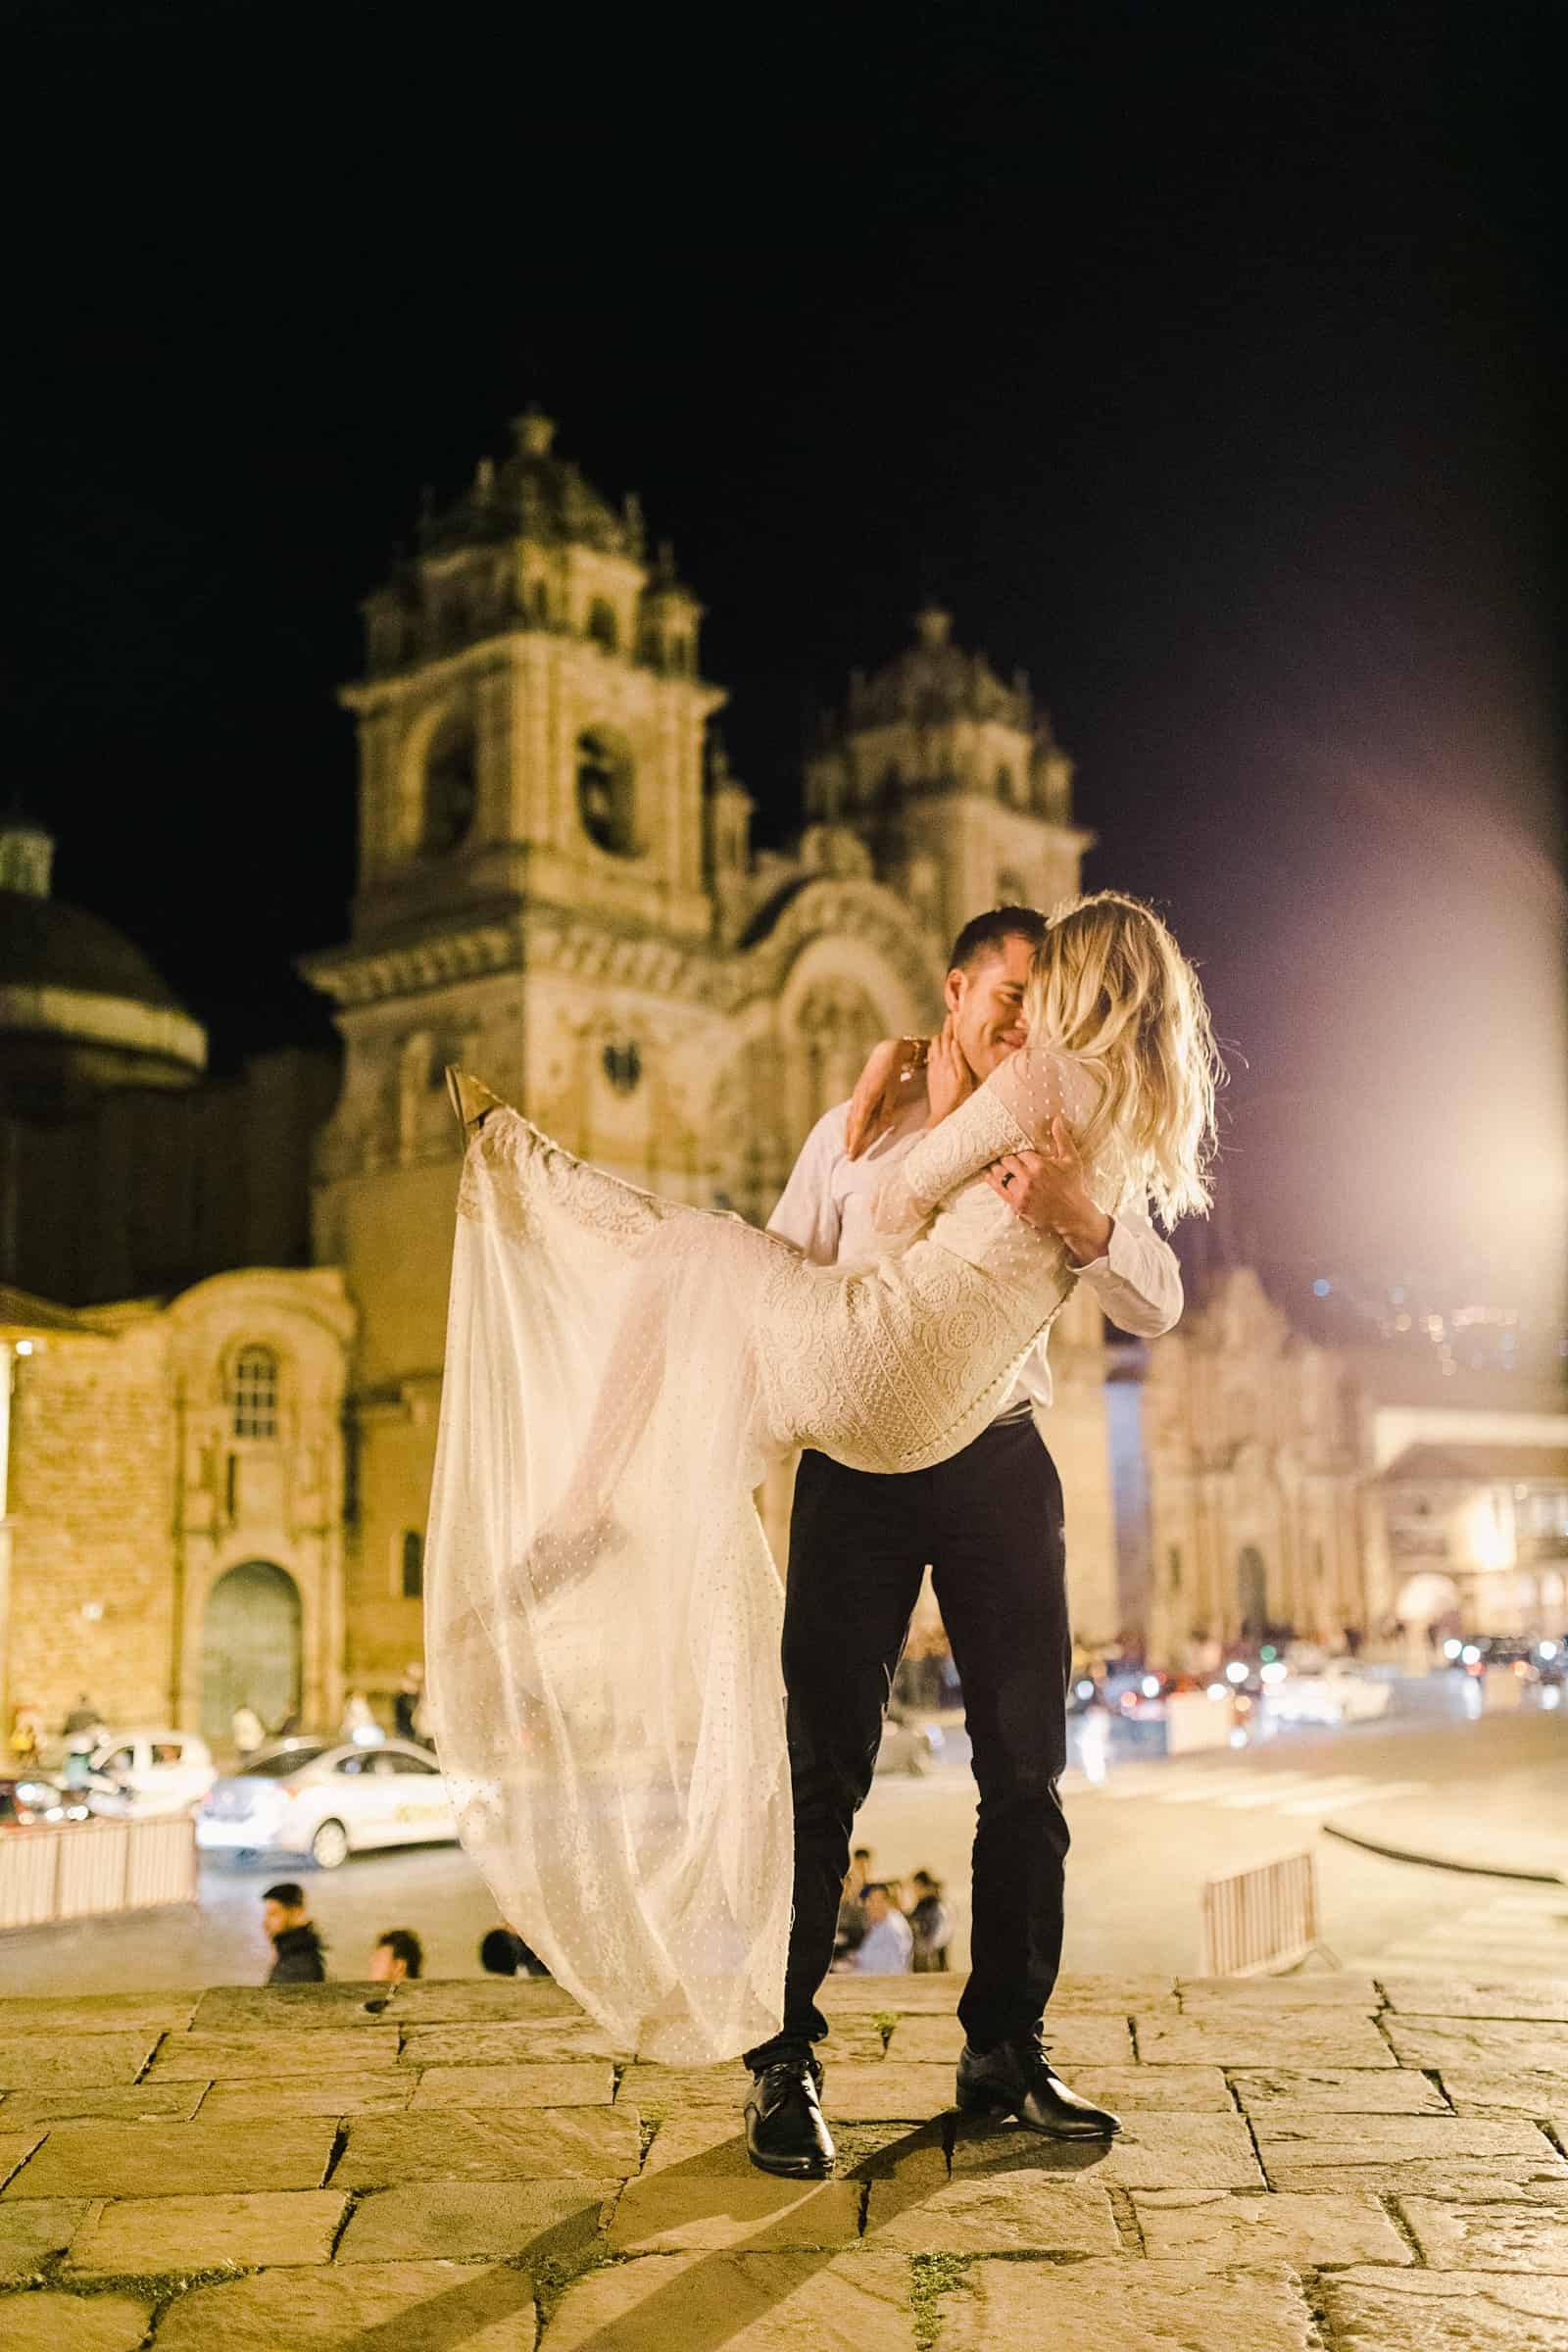 Cusco Peru Destination Wedding Inspiration, travel photography, bride and groom dance in front of Cusco Cathedral at Plaza de Armas at night